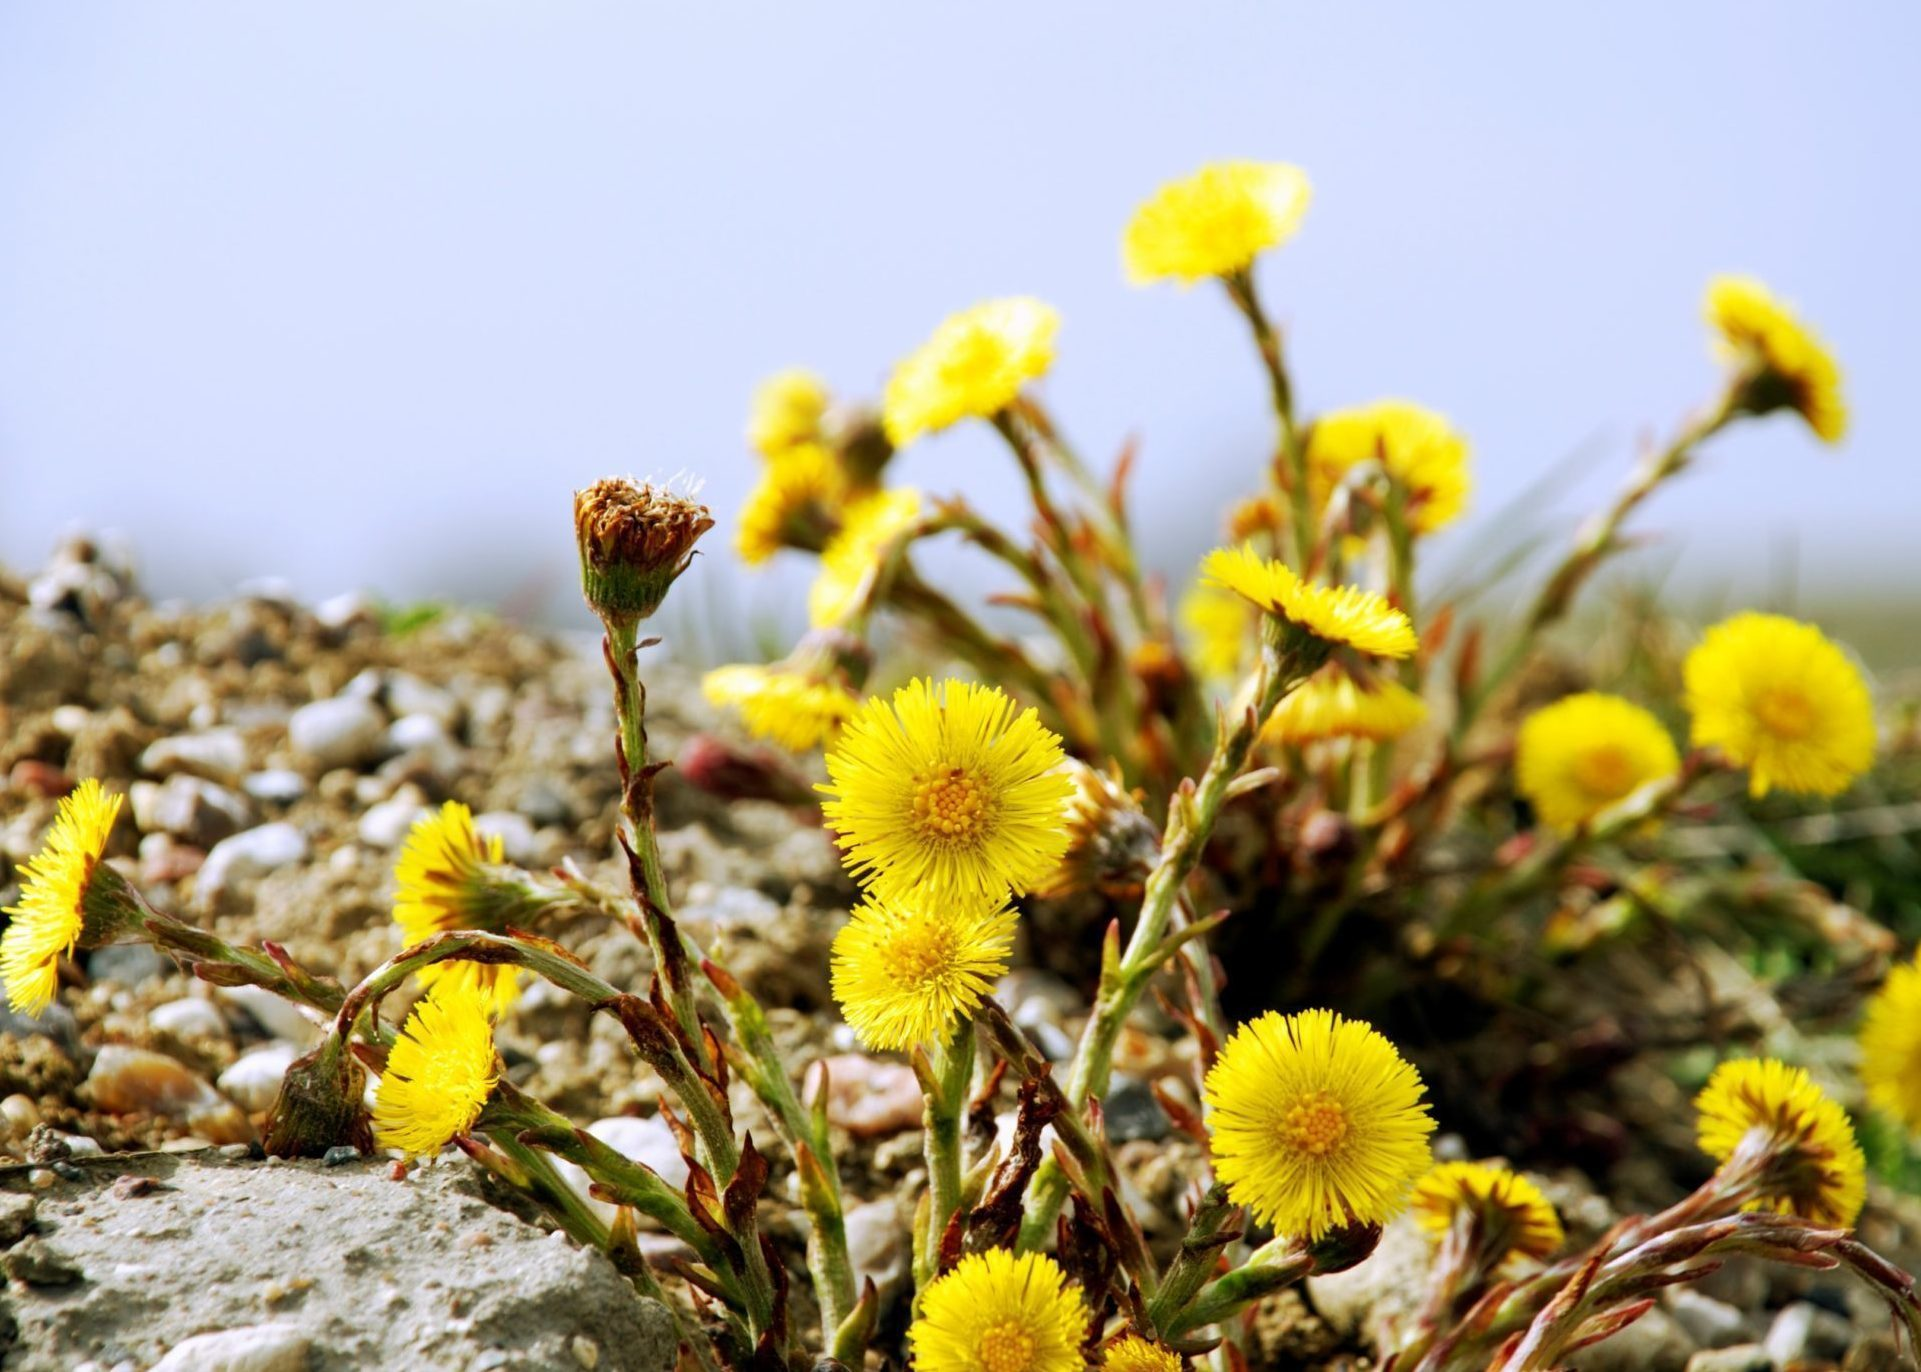 Delicate yellow flowers resembling small dandelions.